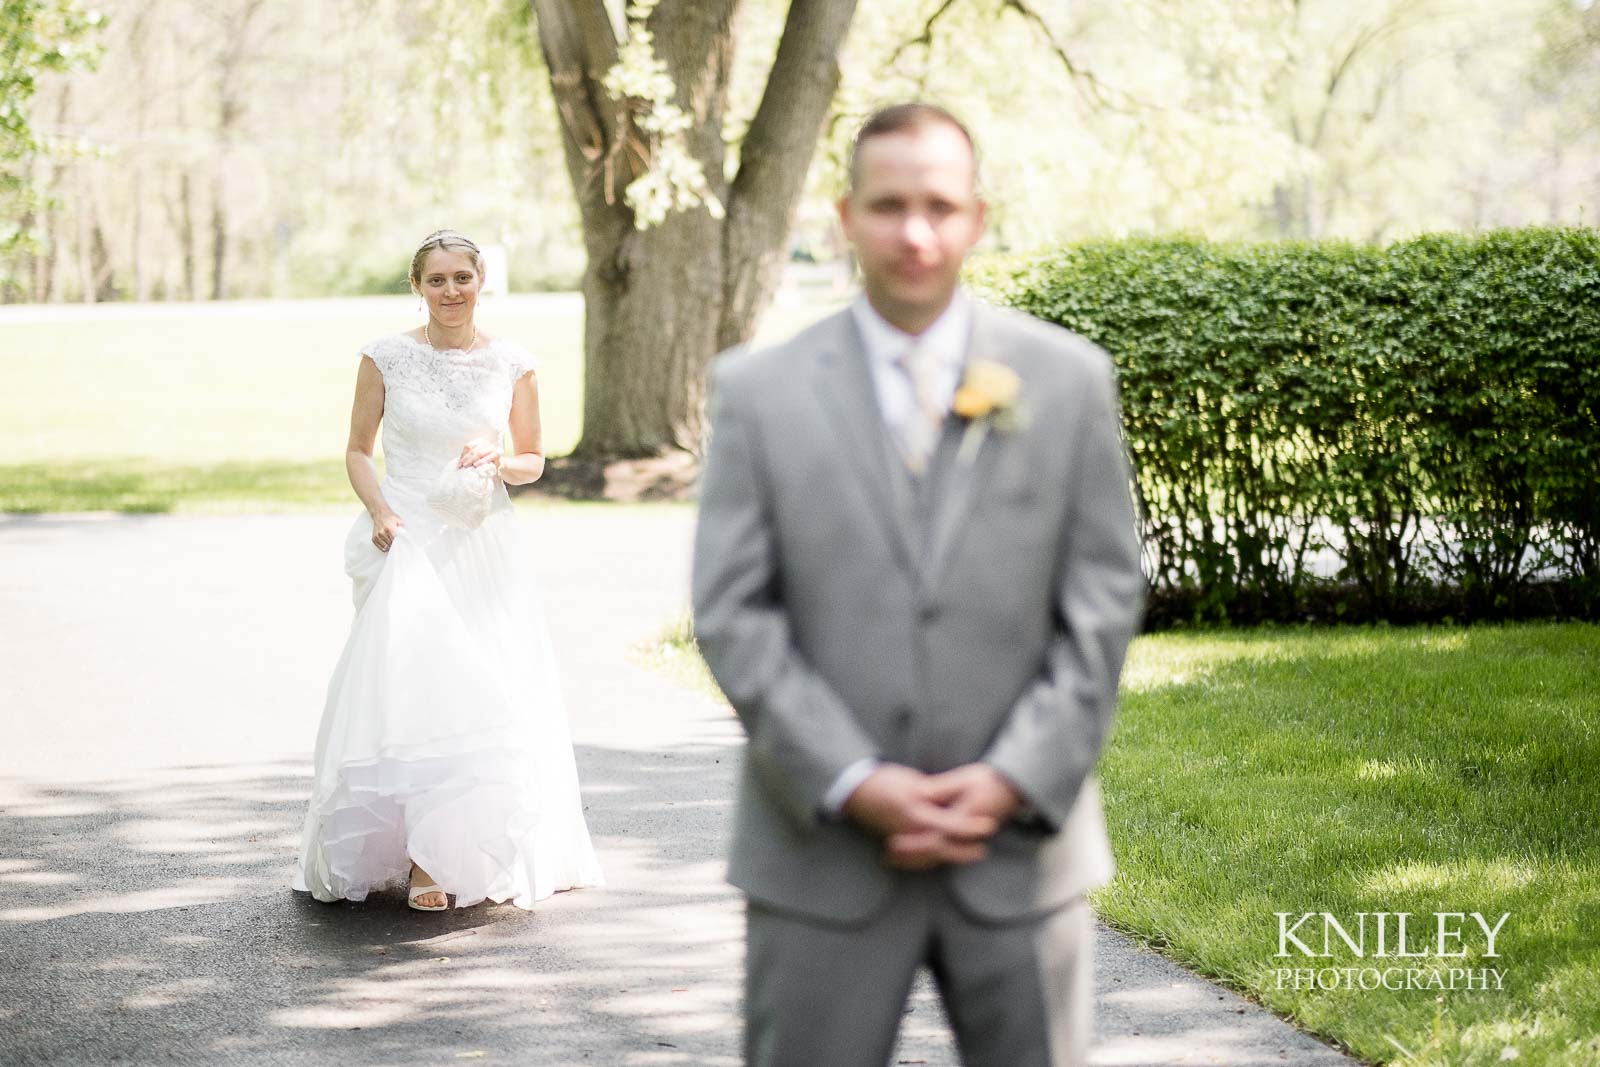 10-Plantation-Party-House-springtime-wedding-Rochester-NY-Kniley-Photography.jpg